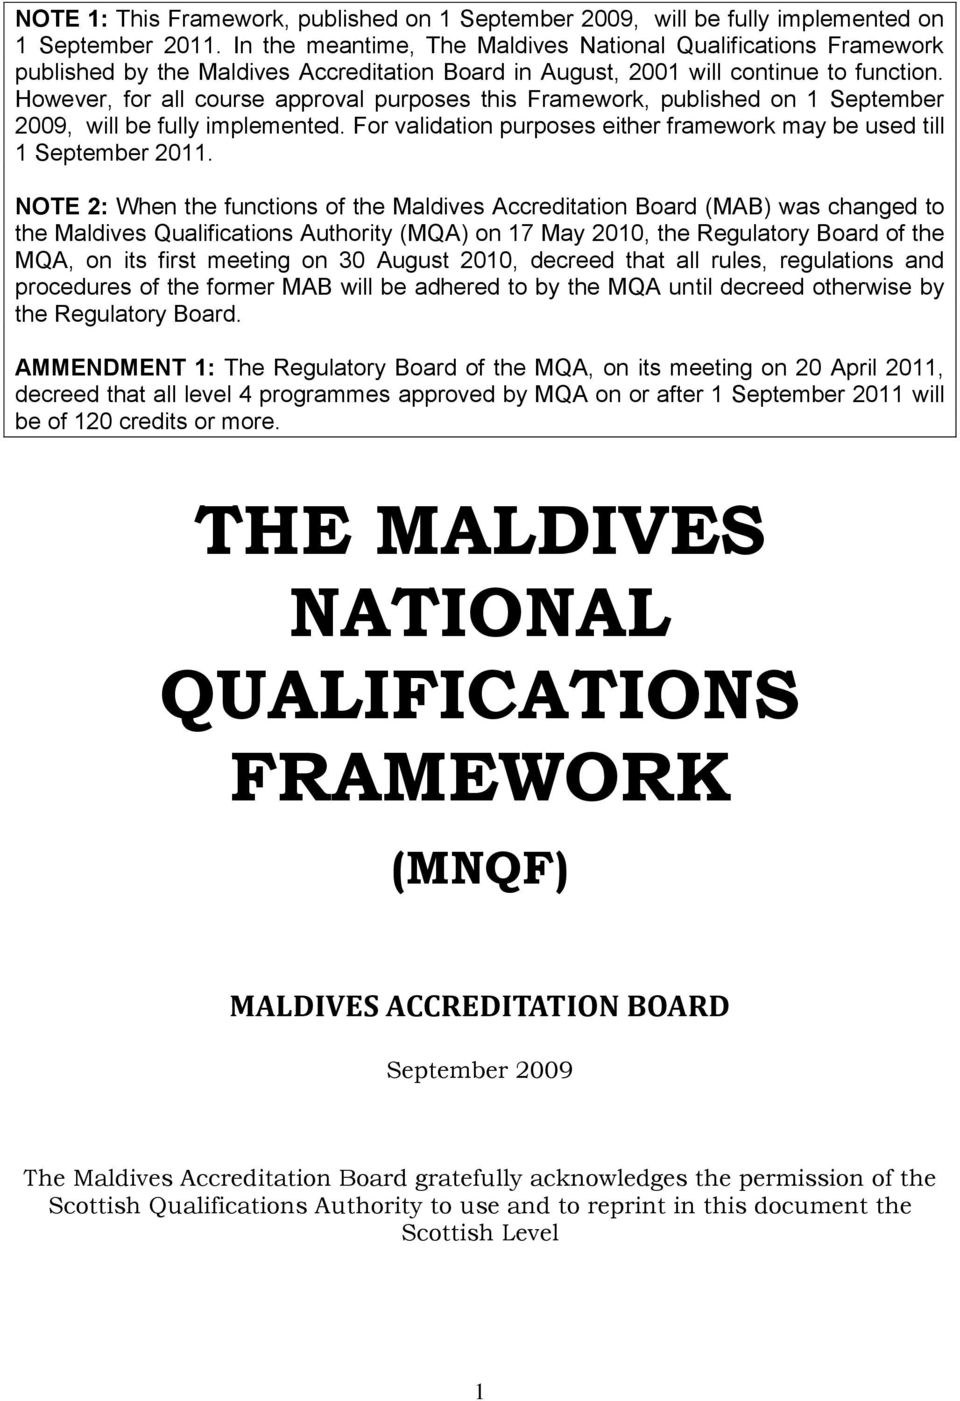 However, for all course approval purposes this Framework, published on 1 September 2009, will be fully implemented. For validation purposes either framework may be used till 1 September 2011.